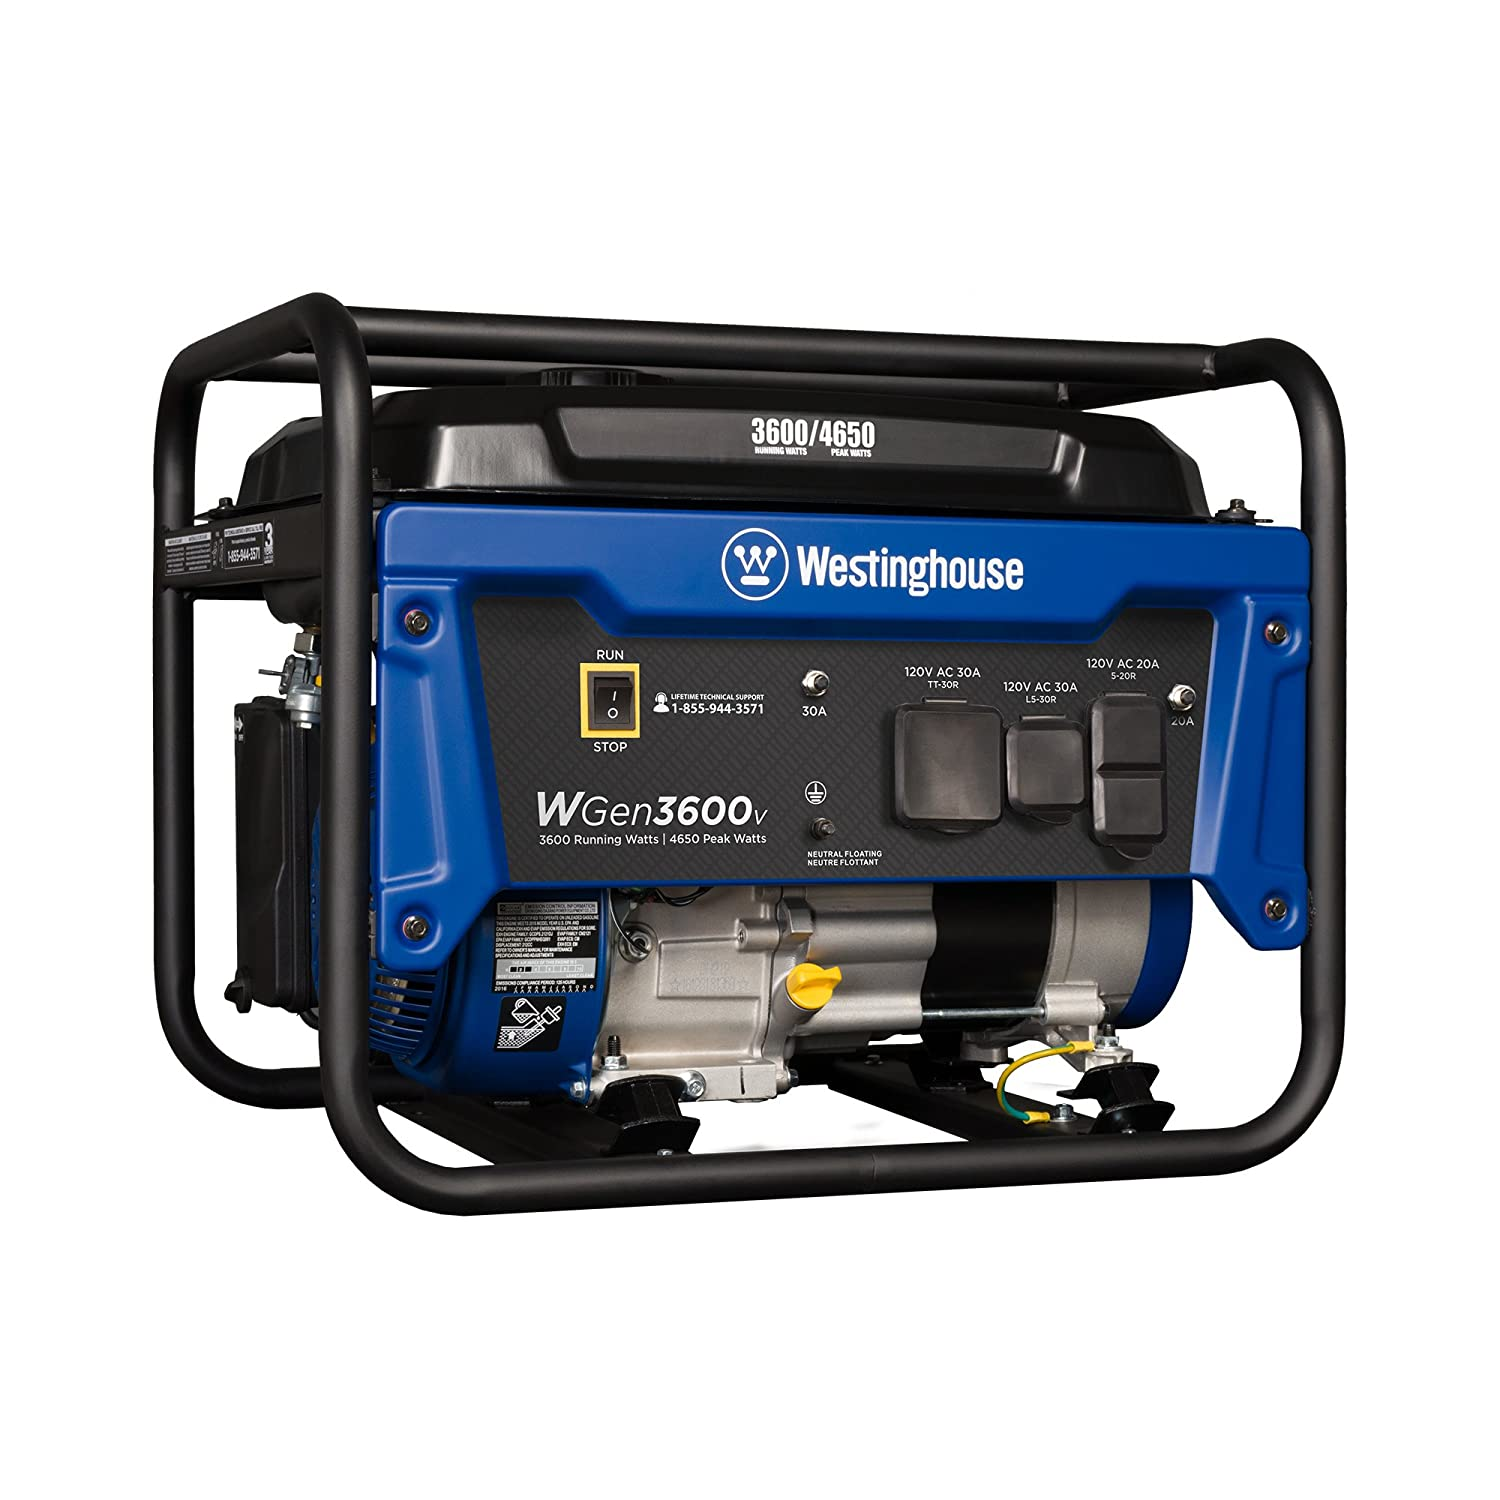 What Are The Best Portable Generators For RV To Buy In 2018